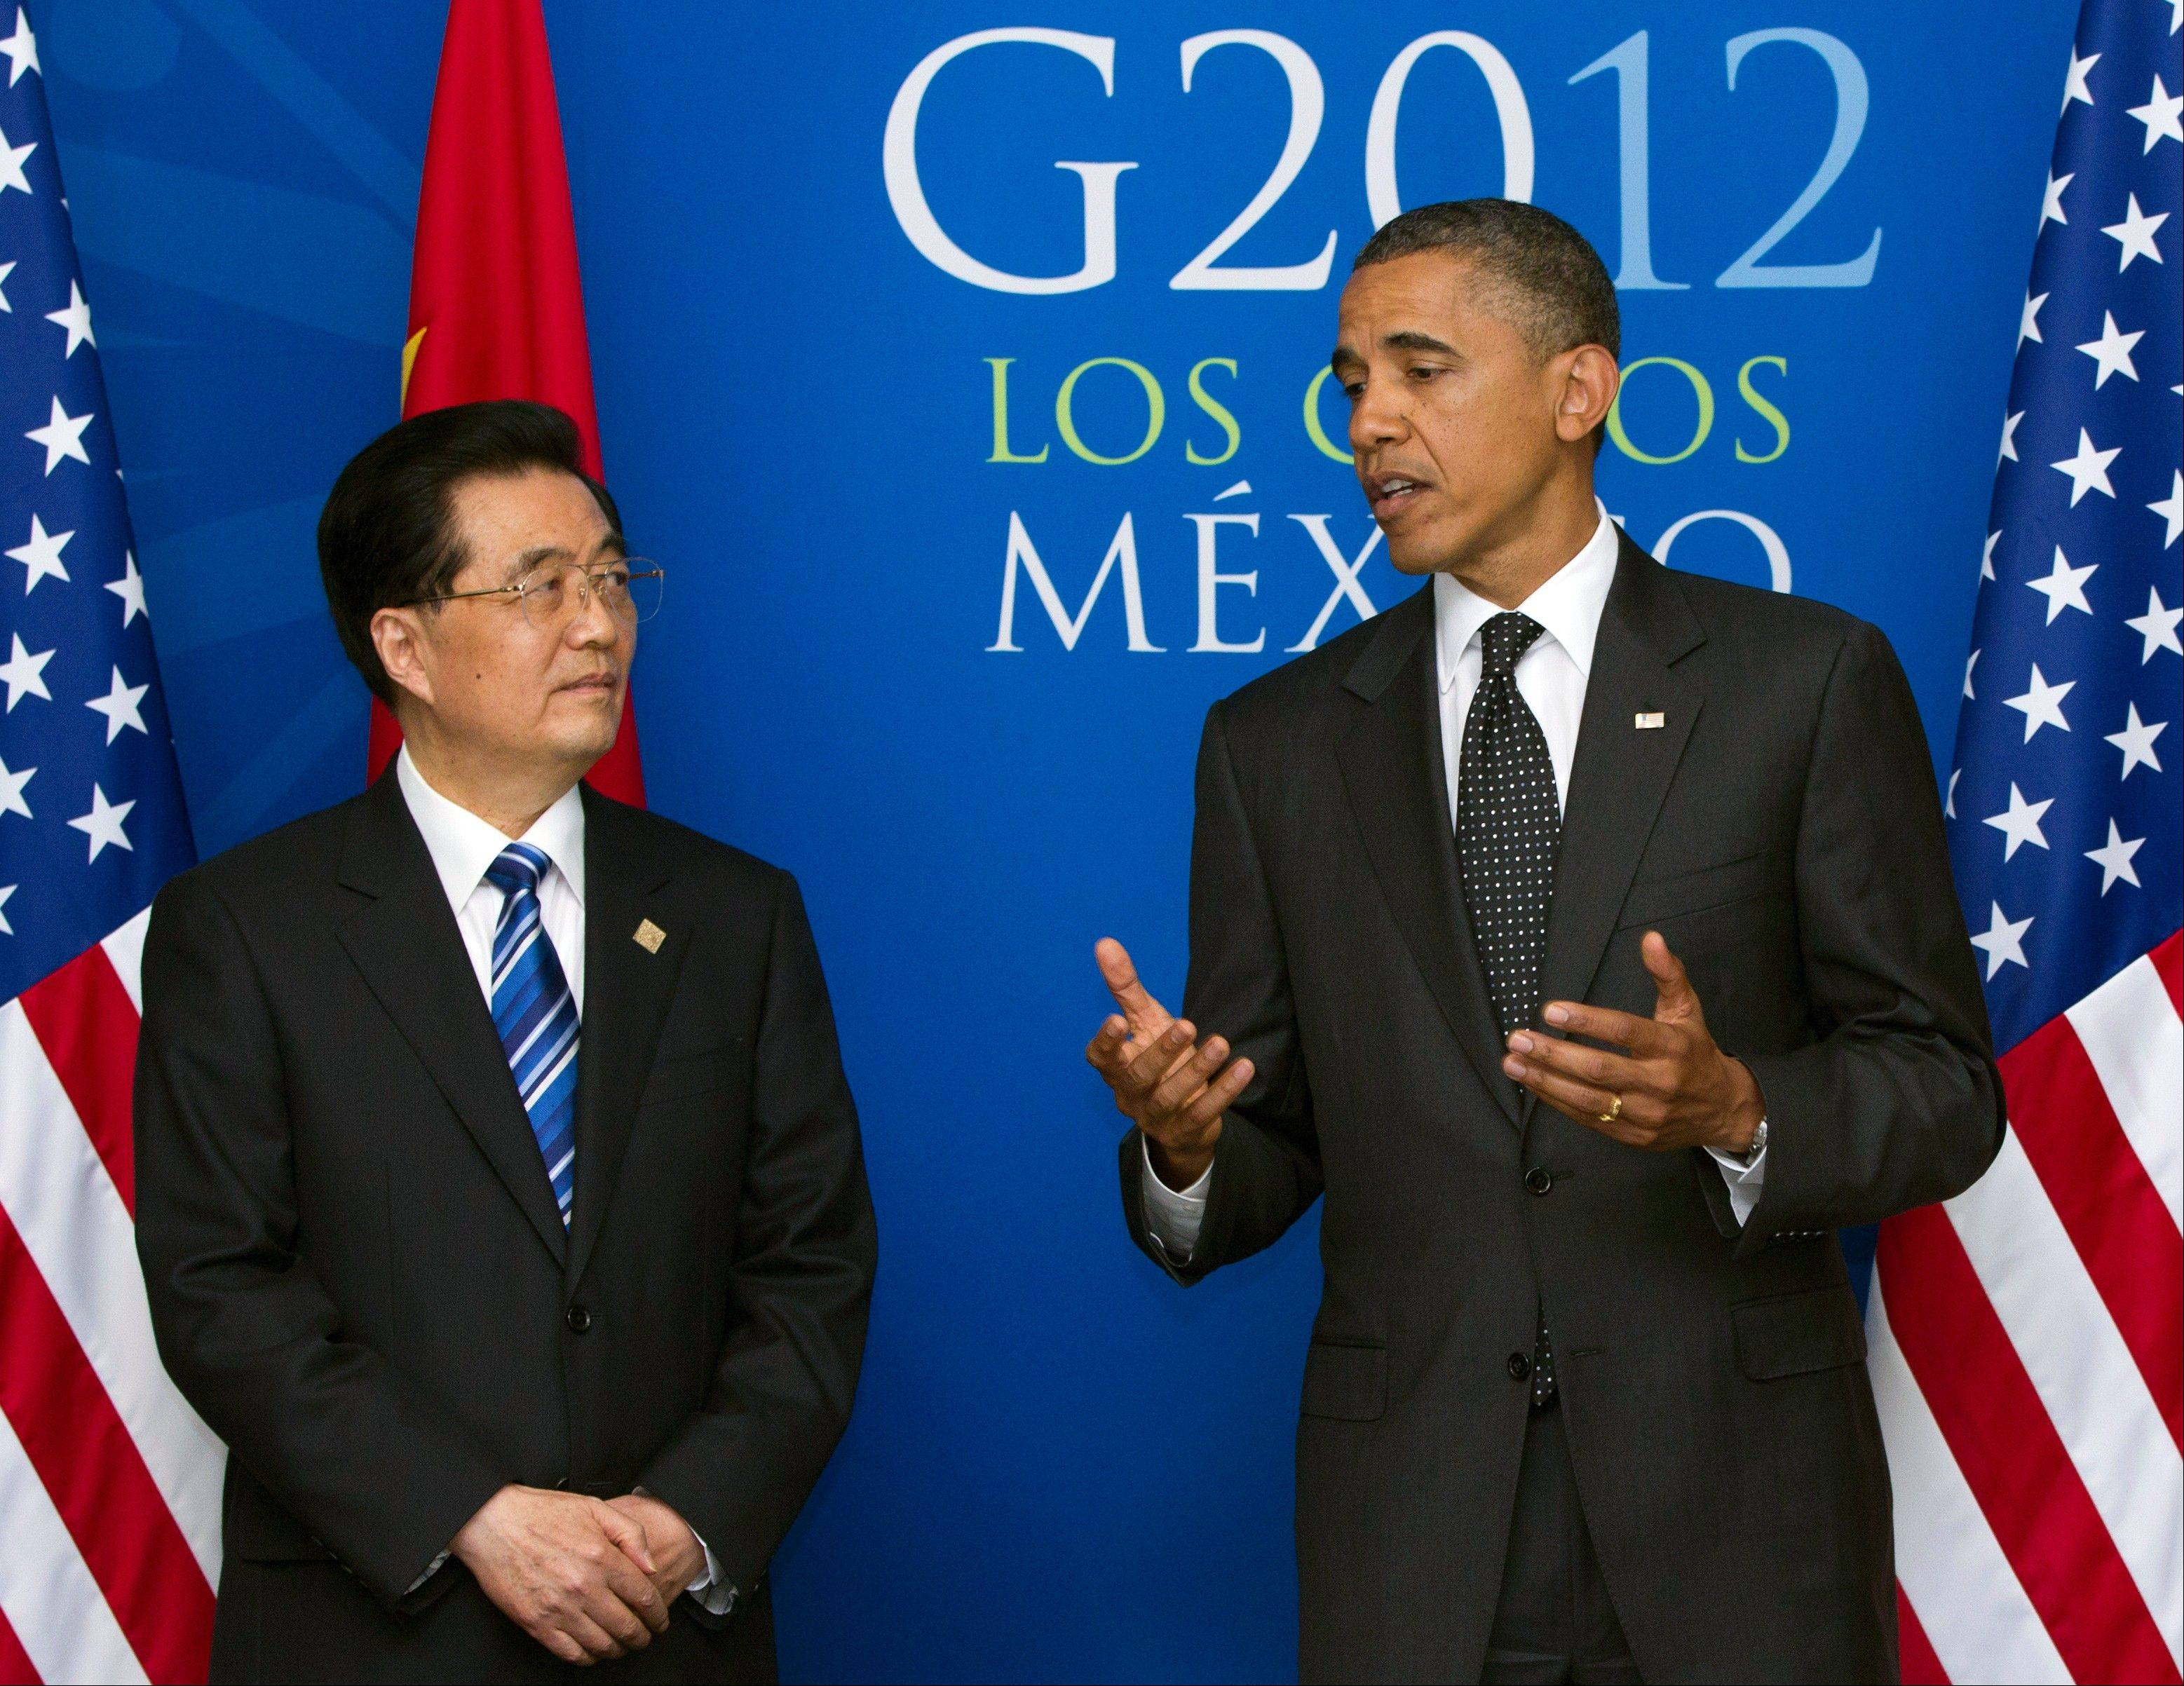 Associated Press/June 19, 2012President Barack Obama speaks as he attends a bilateral meeting with Chinaís President Hu Jintao during the G20 Summit, in Los Cabos, Mexico.